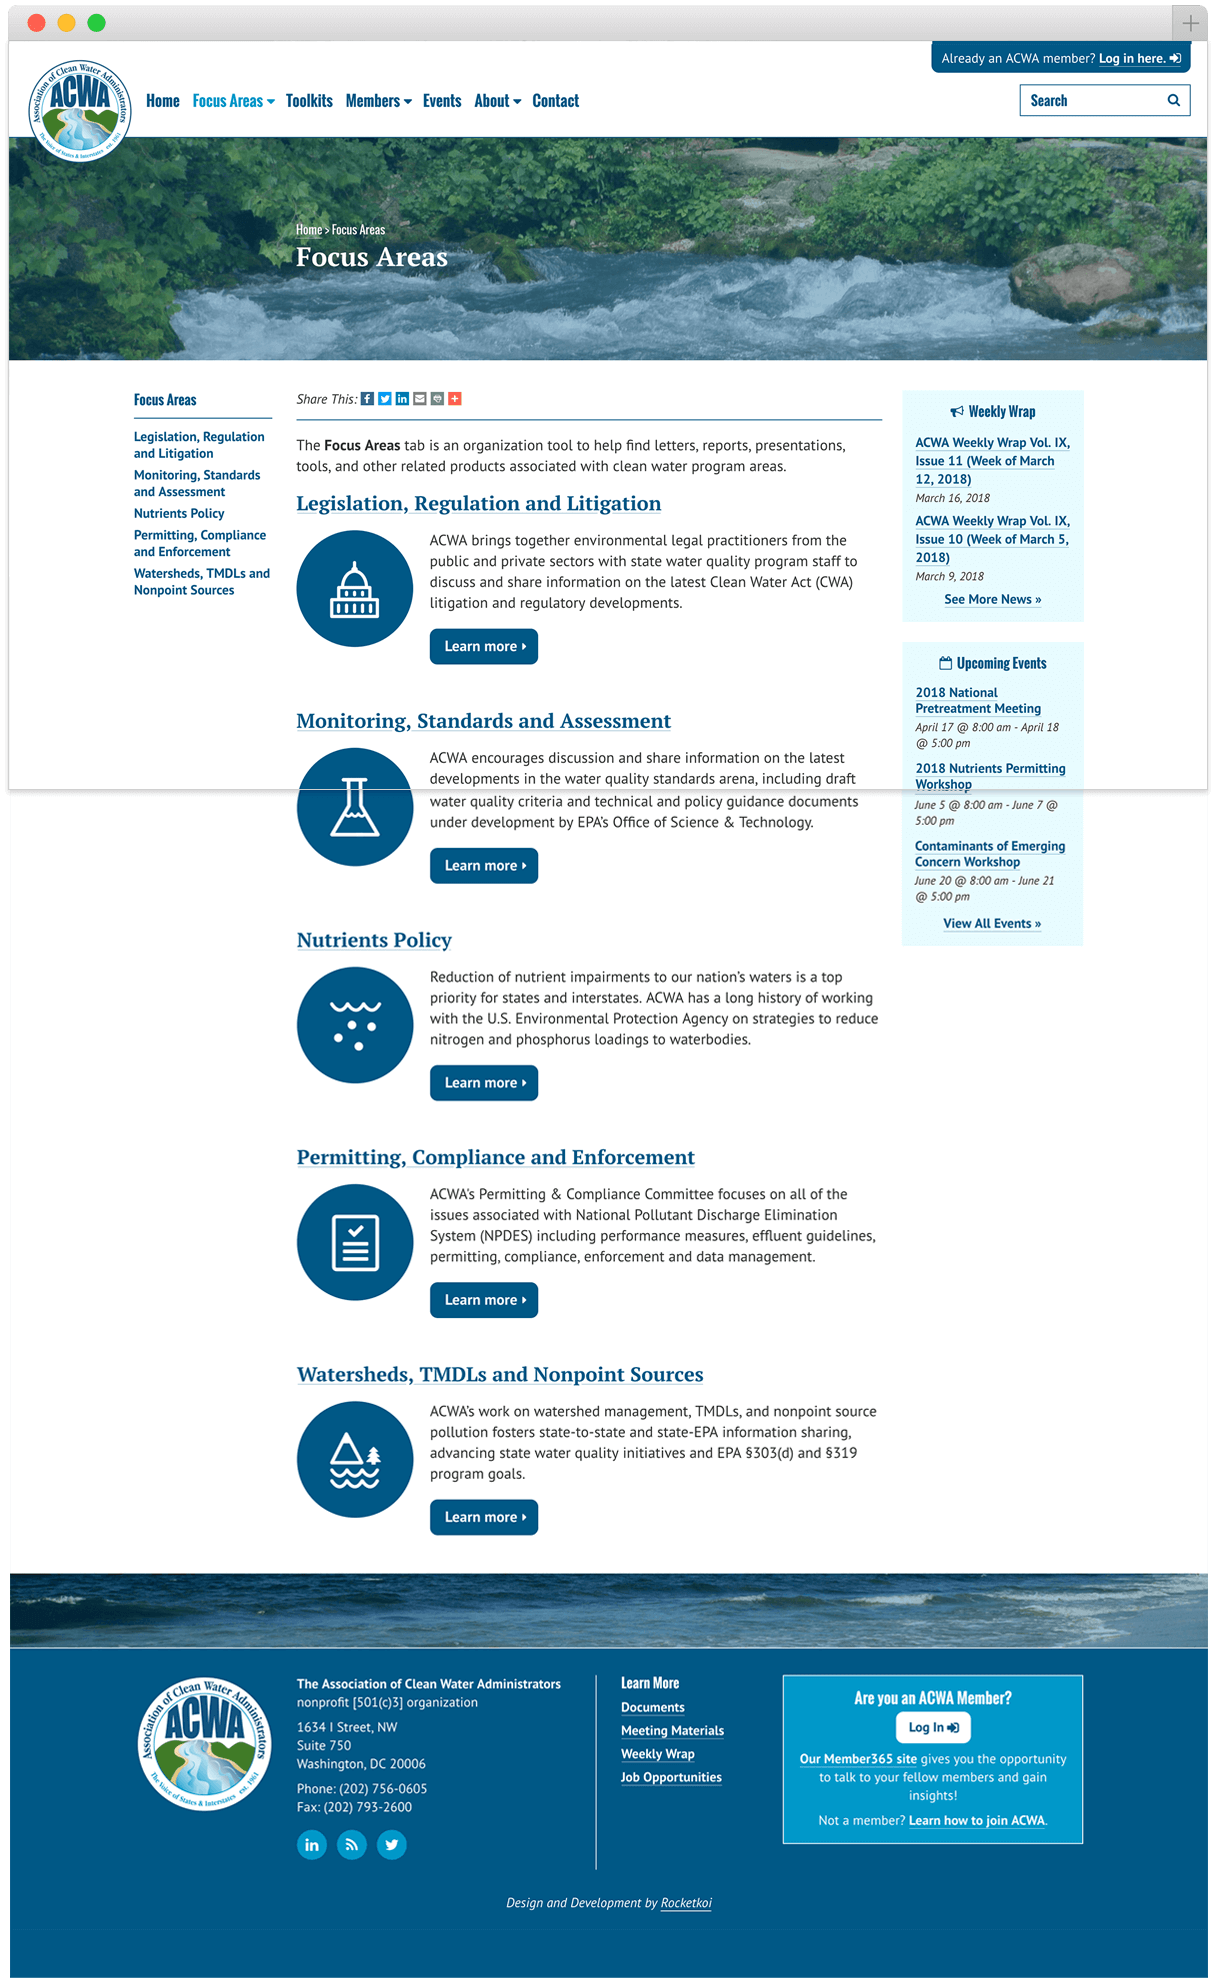 acwa-us.org focus areas page